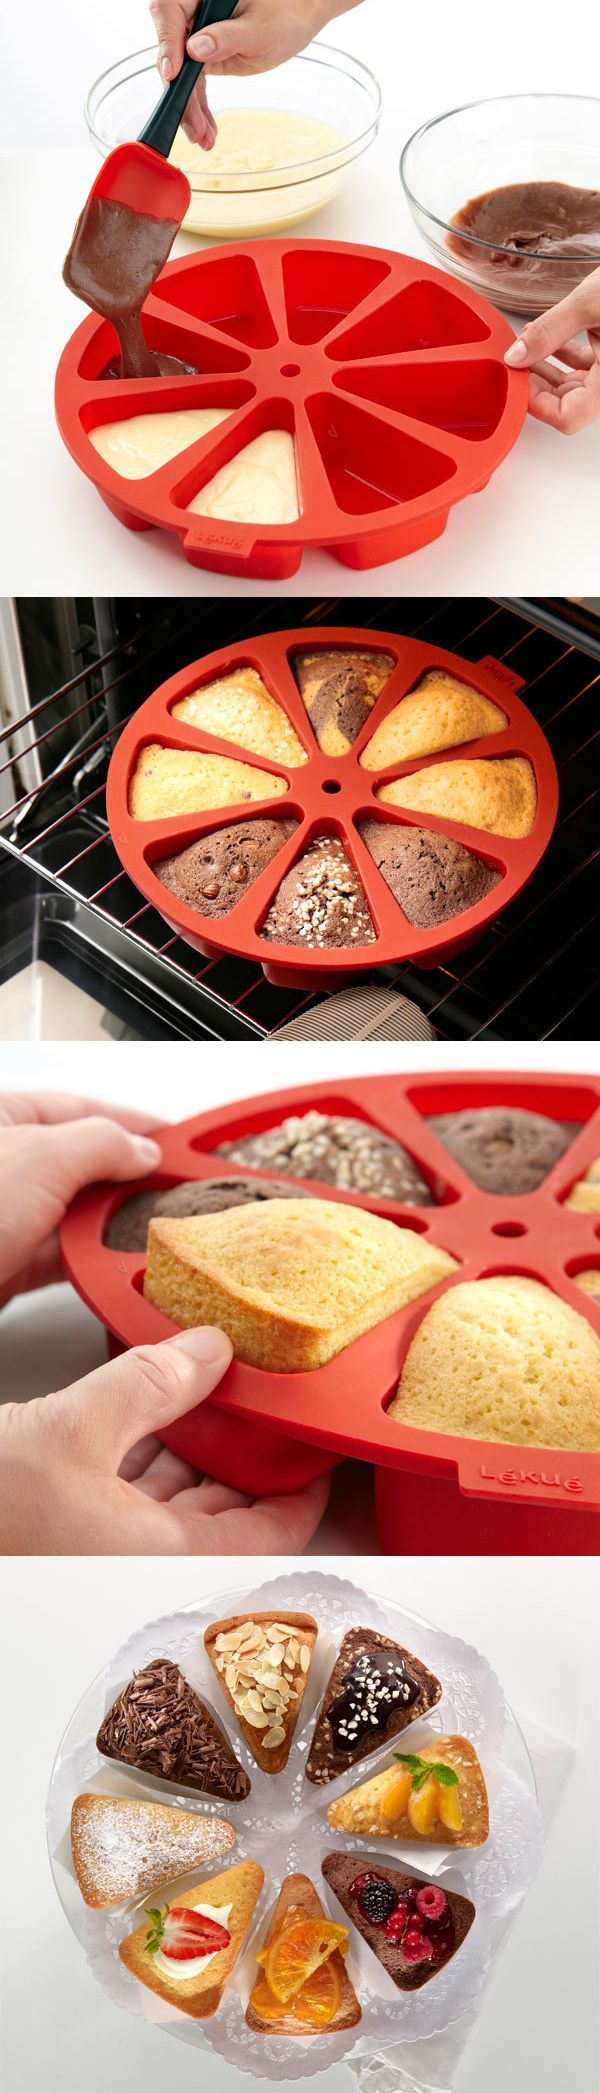 Cake mold for individual slices #product_design #kitchen